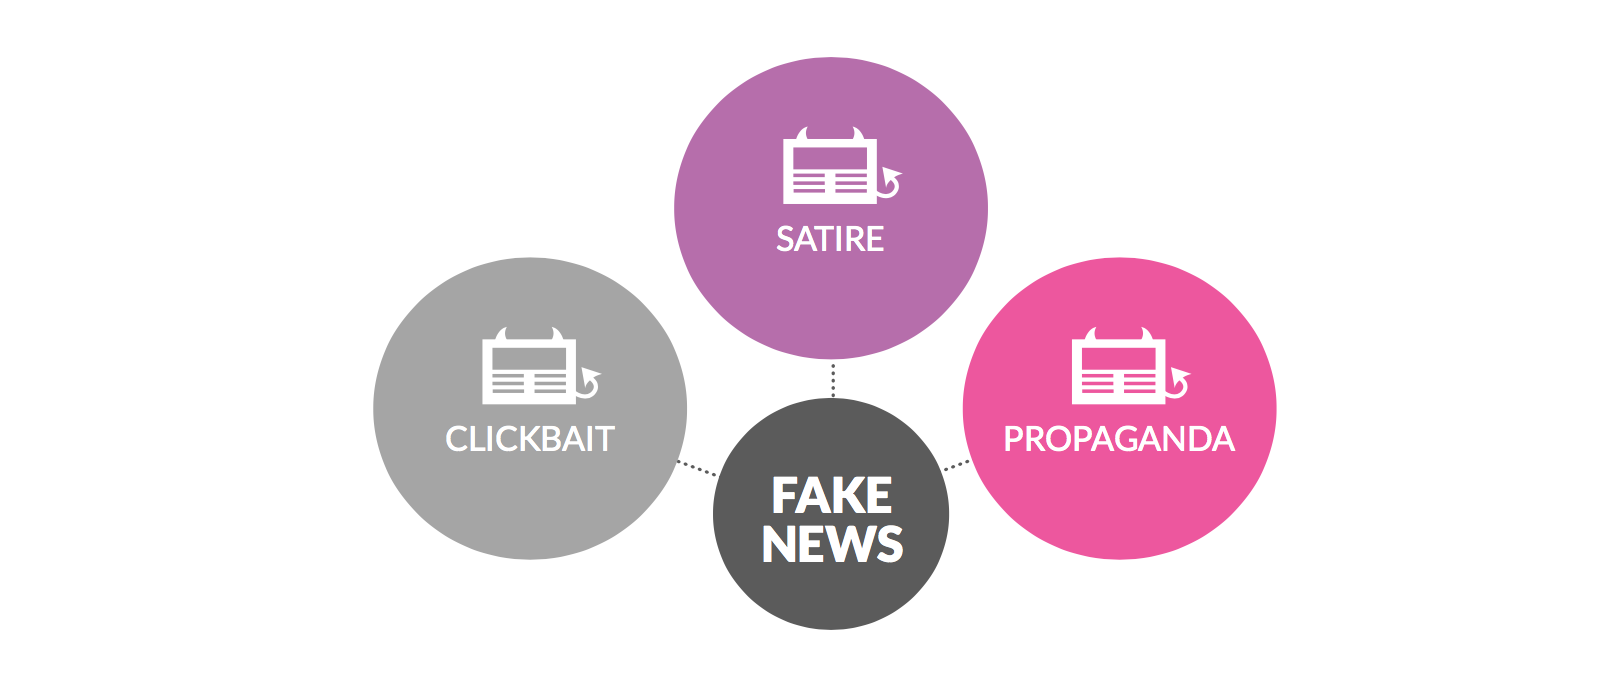 Clickbait, propaganda, and even satire contribute to the proliferation of 'fake news'